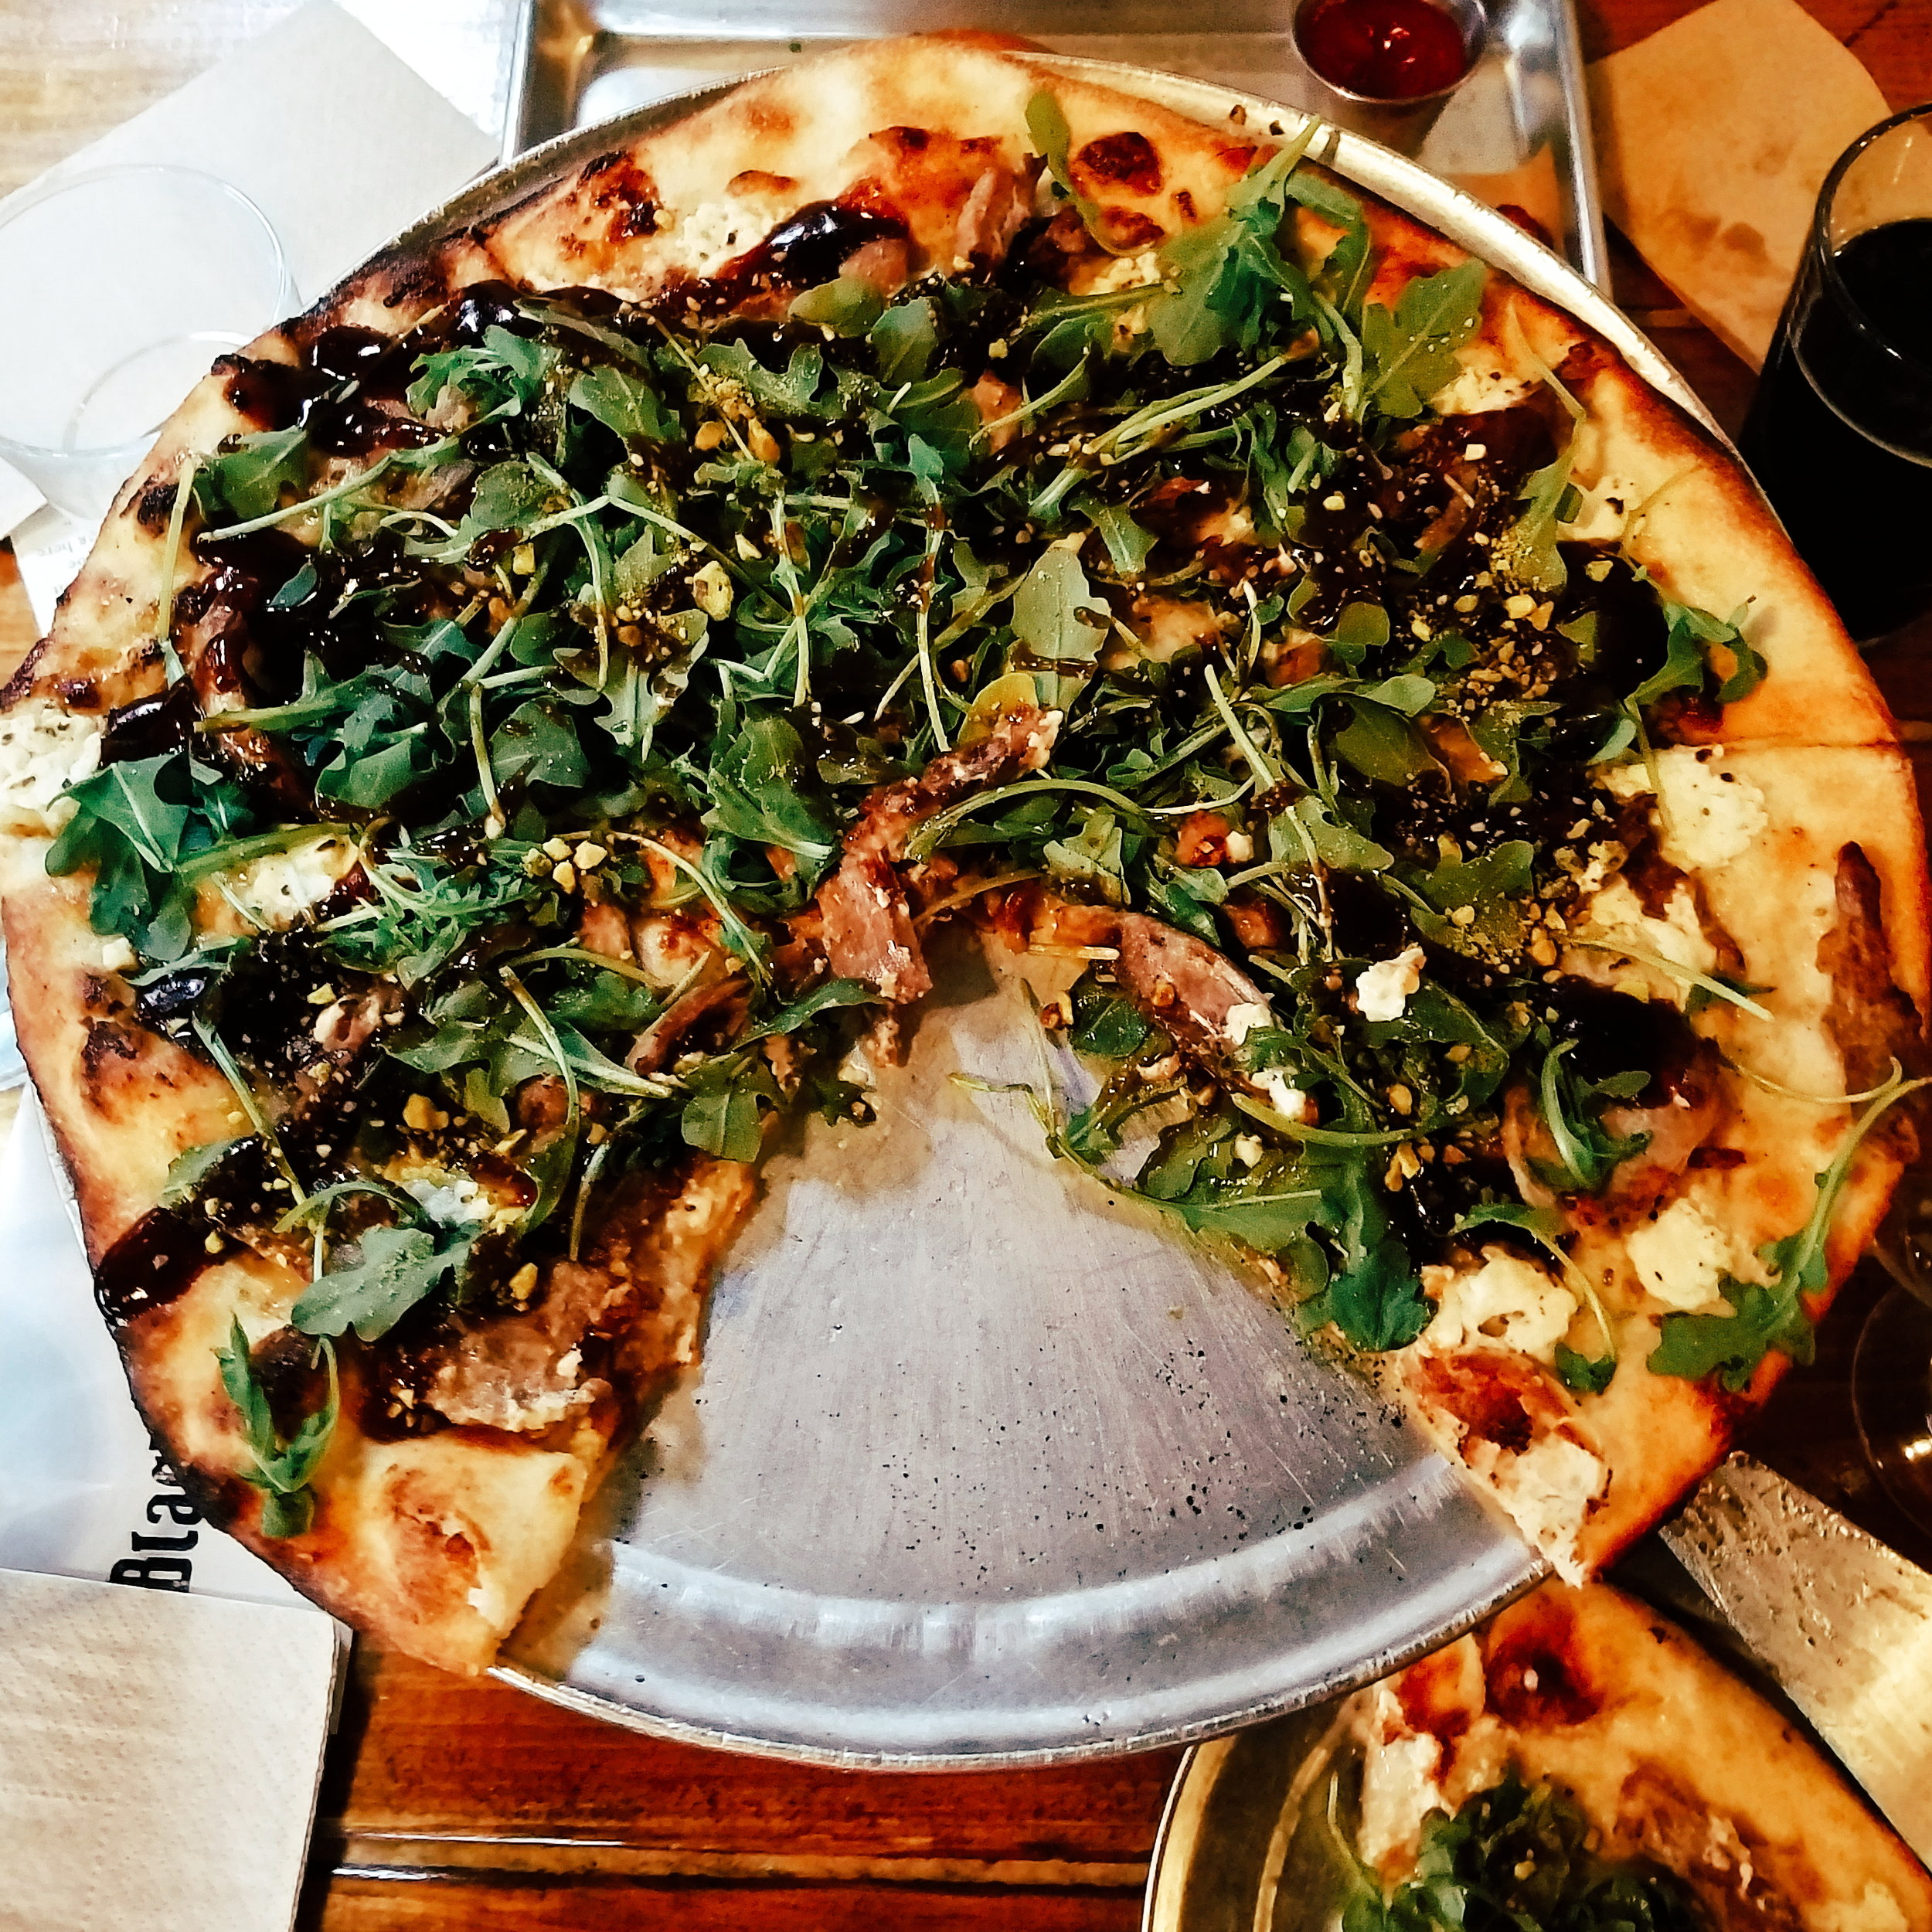 Black Duck Pizza - topped with smoked duck, goat cheese, pistachios, arugula, and a balsamic reduction. Possibly the best pizza I've ever eaten!